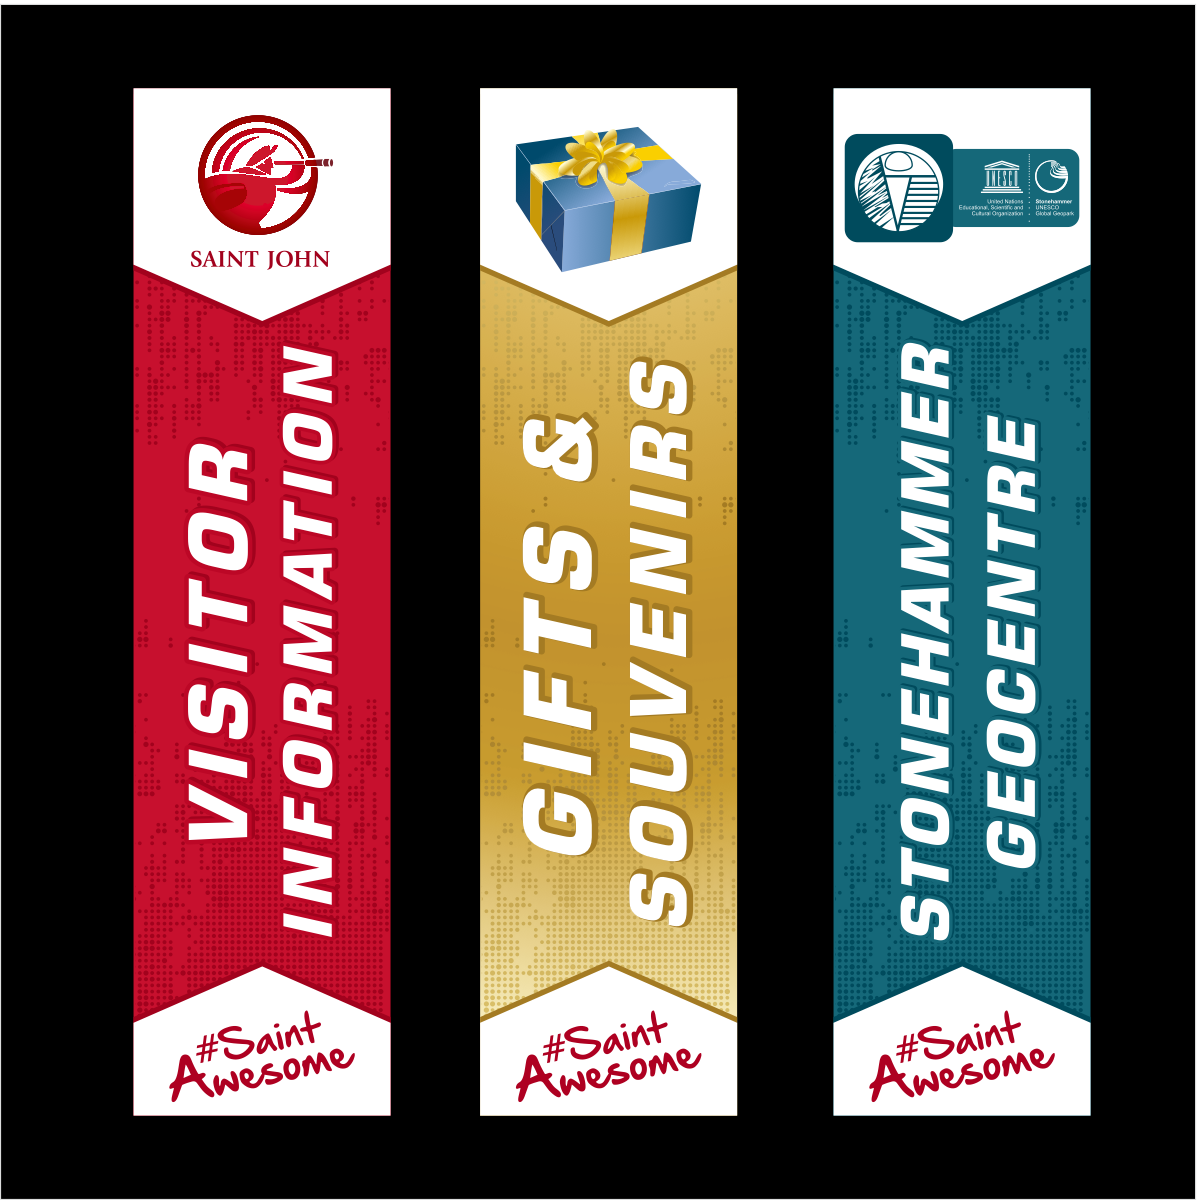 3 banners